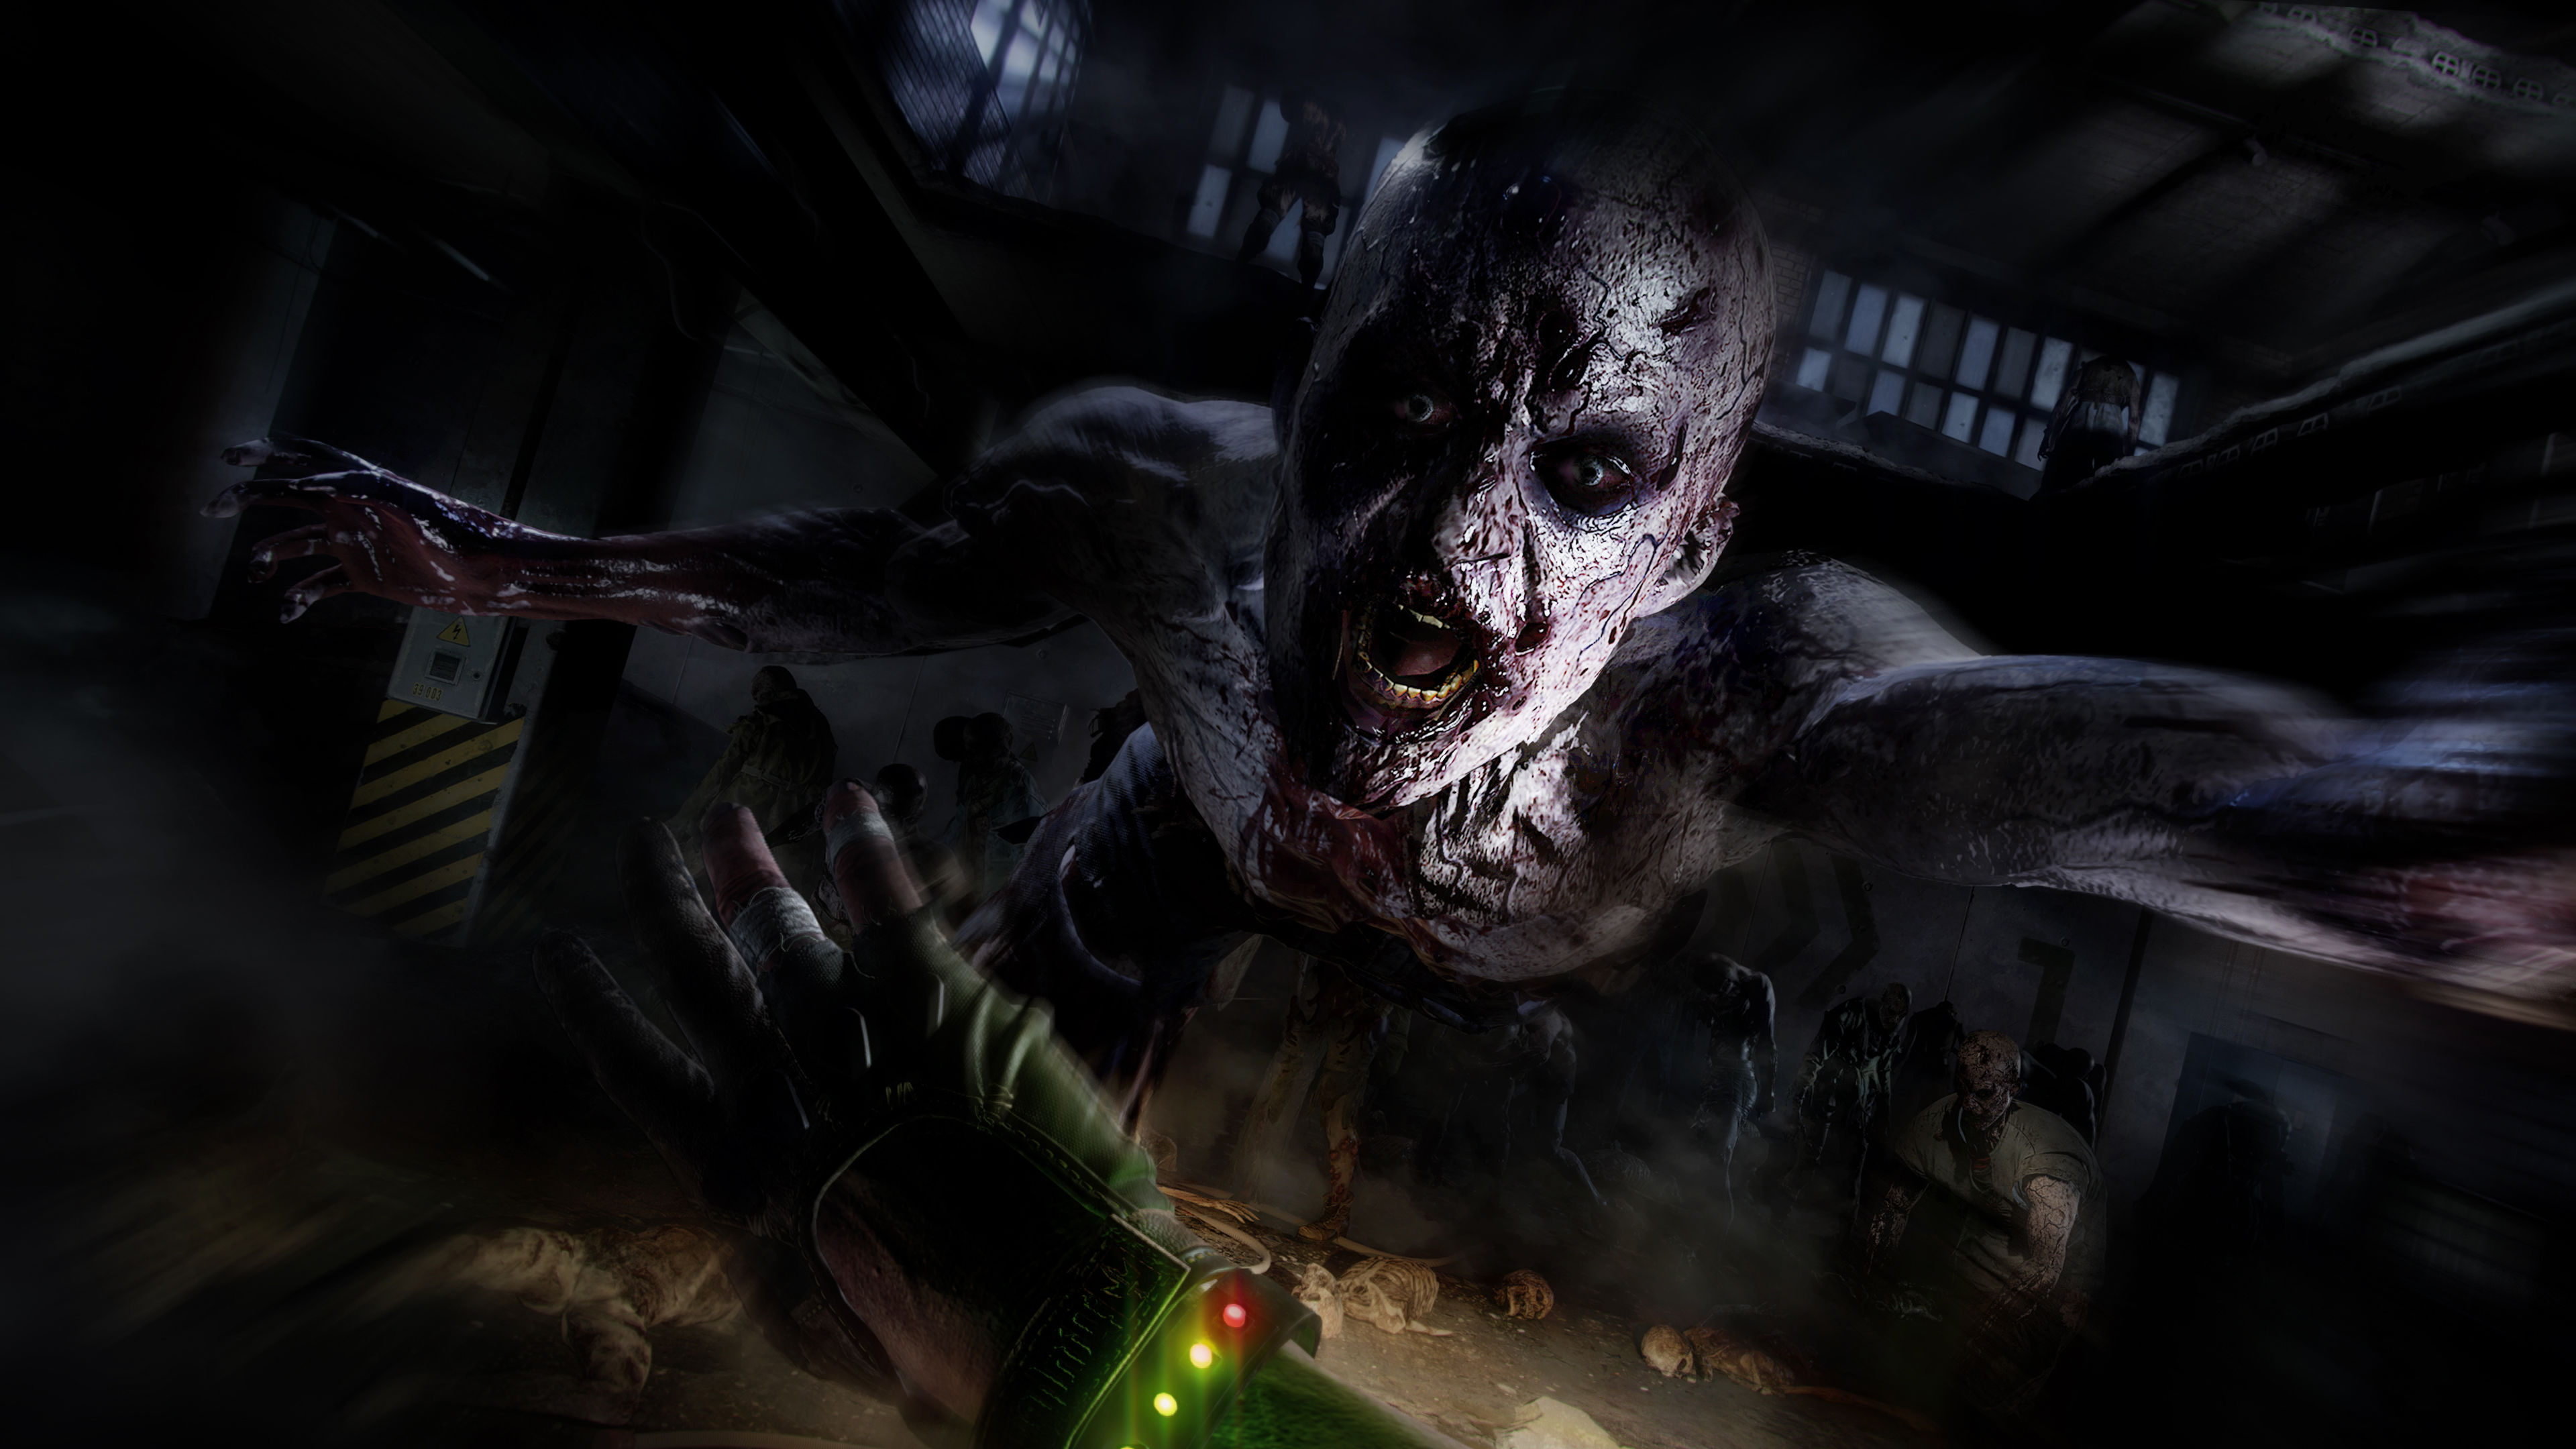 Official details for Dying Light 2 coming this week